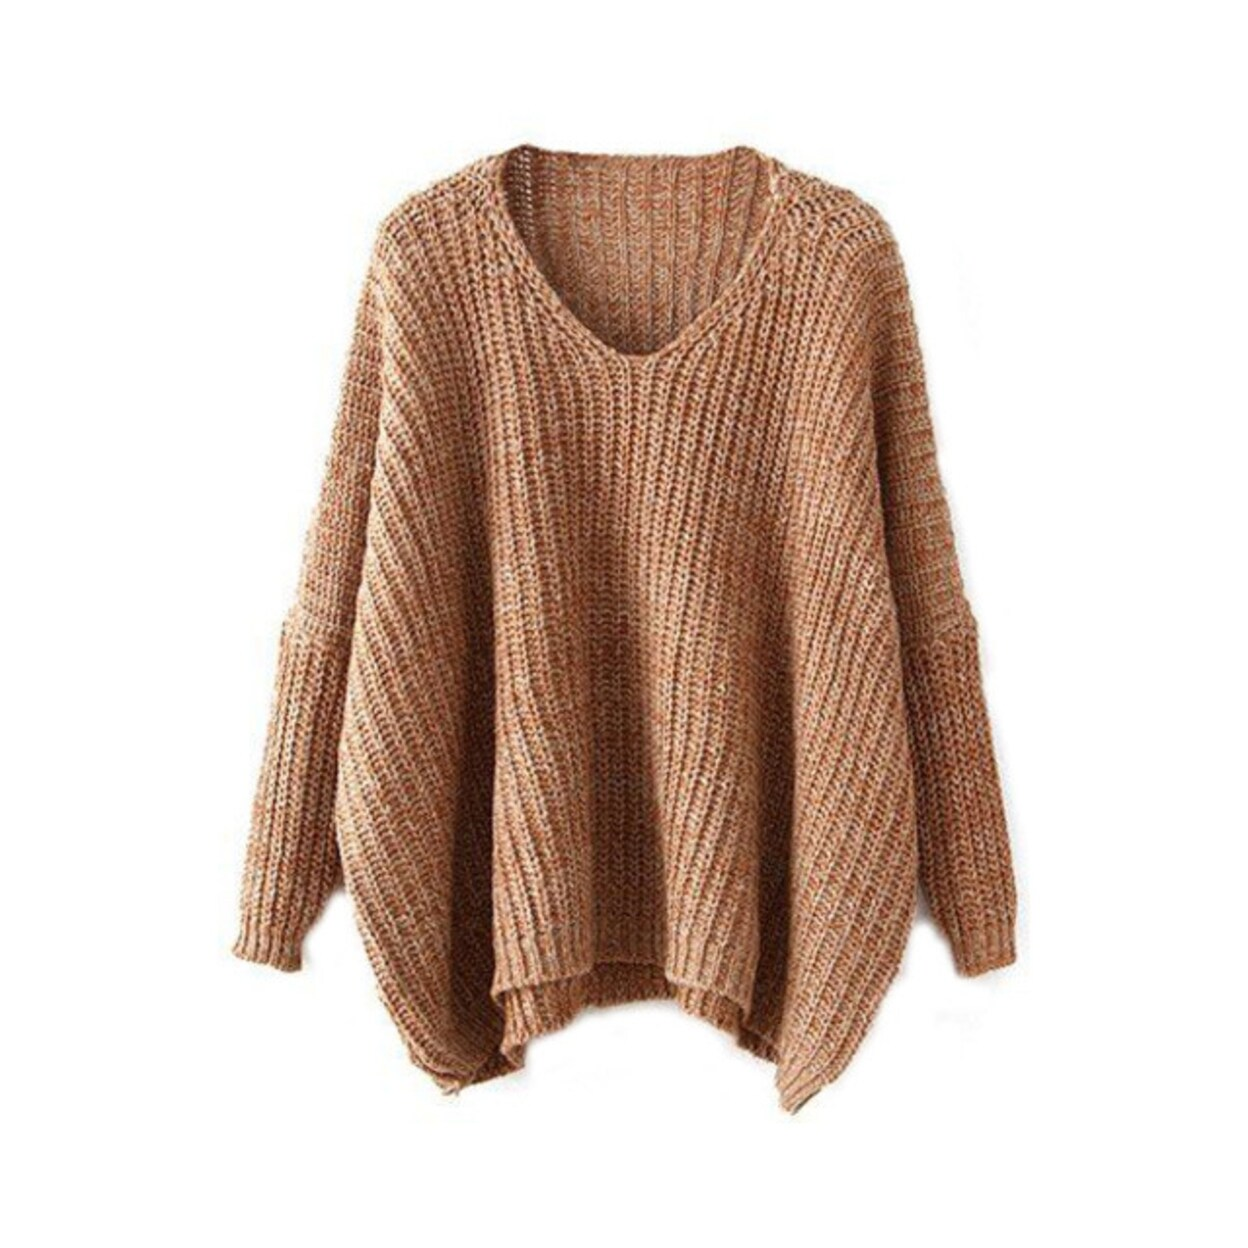 2c4dfedb76c Stylish Women Knitted Long Sleeve Oversized Sweater